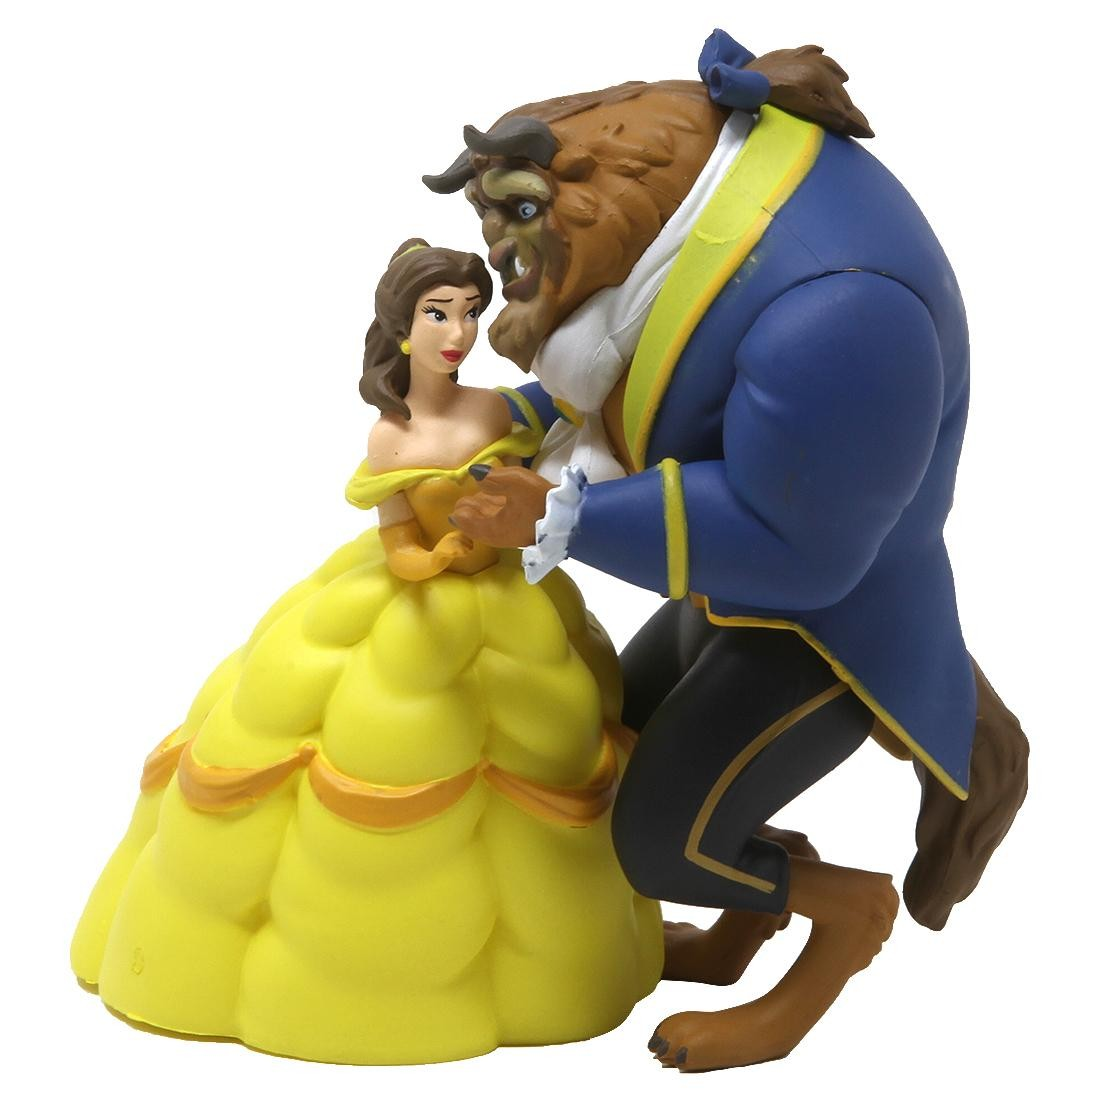 Medicom Udf Disney Series 7 Beauty And The Beast Belle And Beast Ultra Detail Figure Yellow